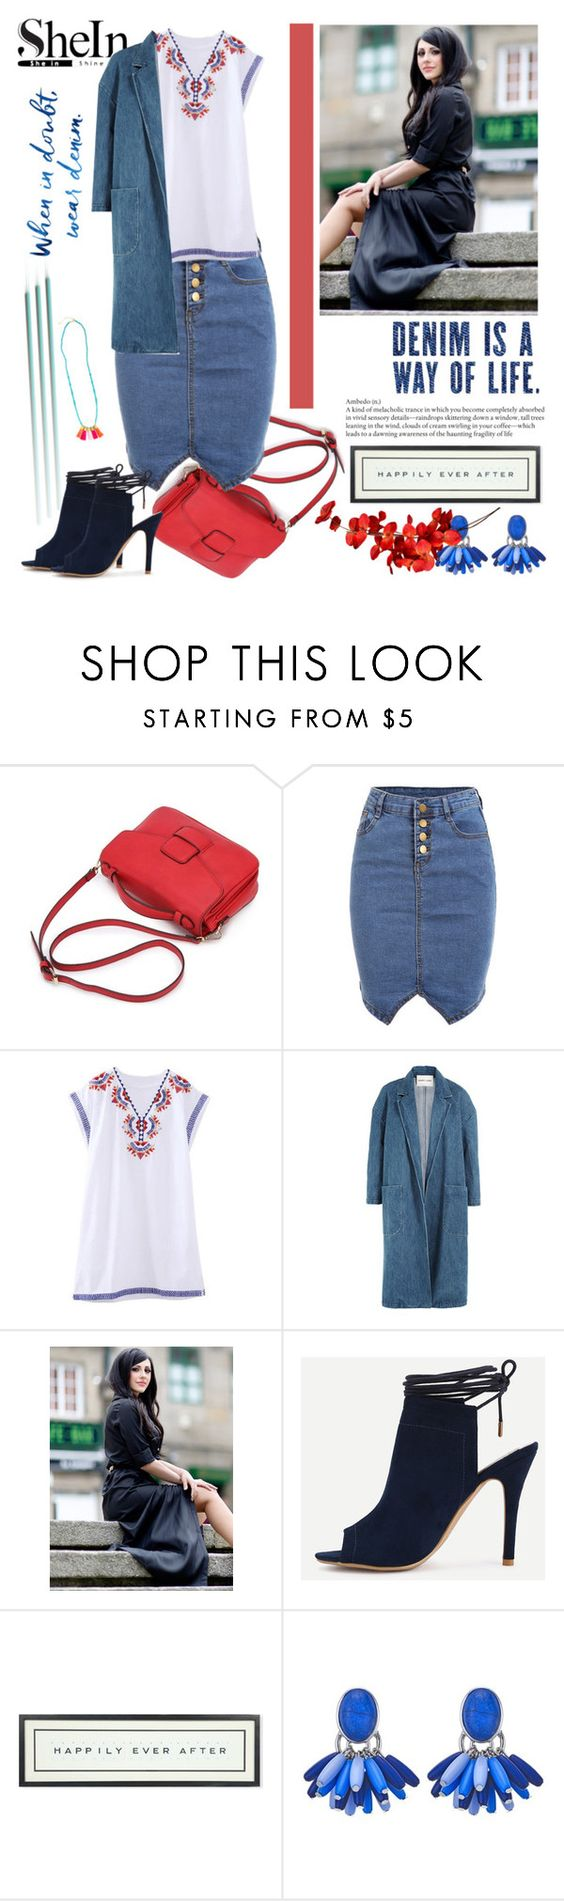 """Shein skirt"" by irinavsl ❤ liked on Polyvore featuring Sandy Liang and Vintage Playing Cards"